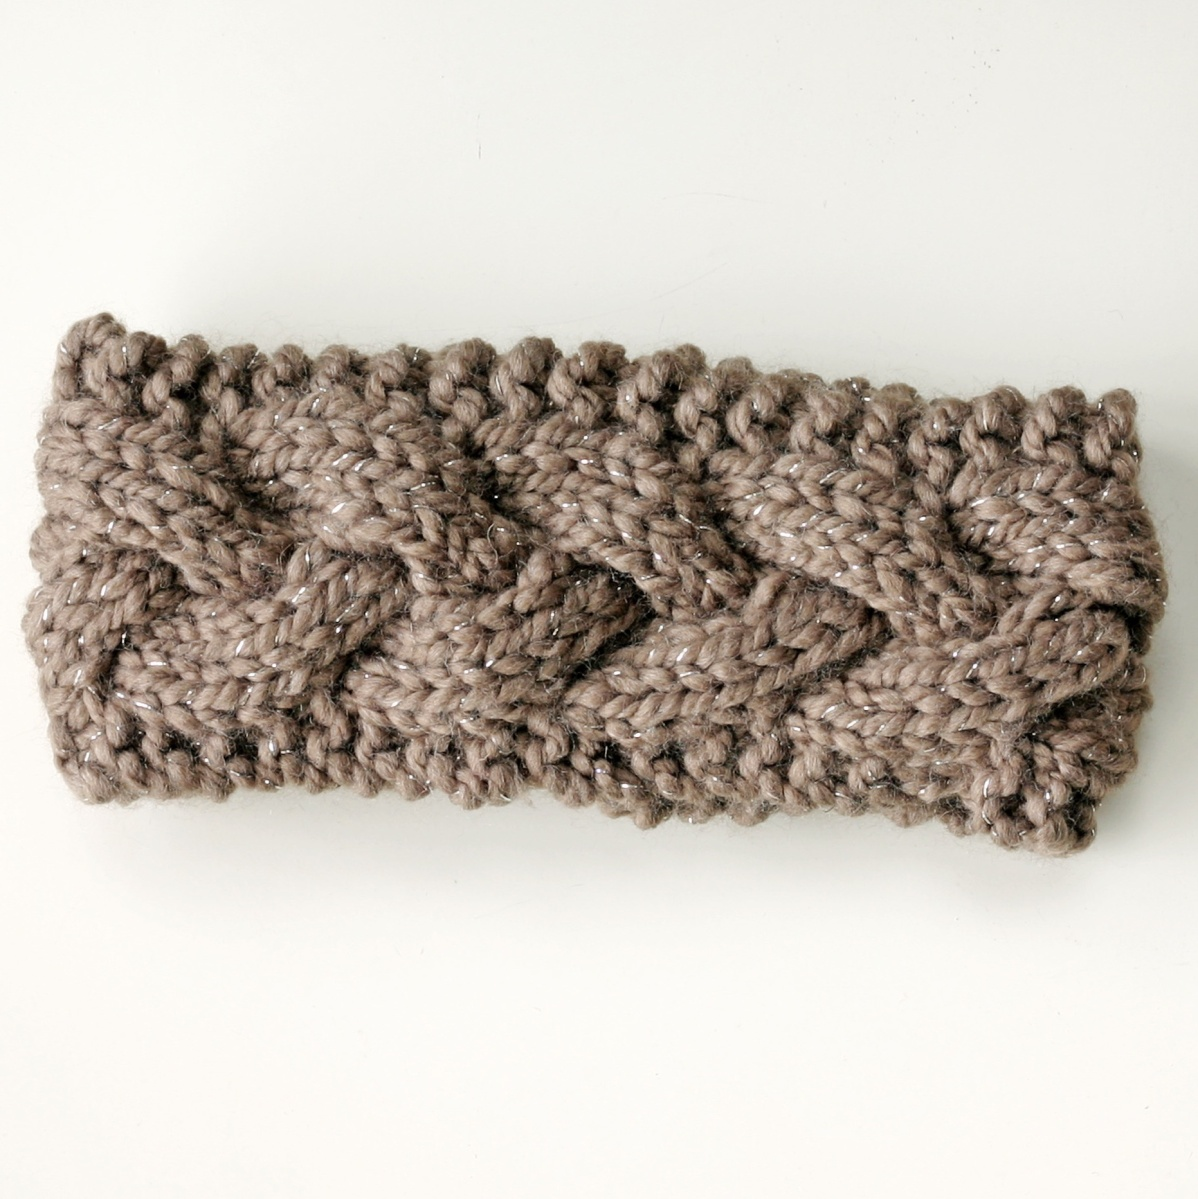 Knitted Ear Warmer Pattern : chunky knit headband ear warmer Knits for Life